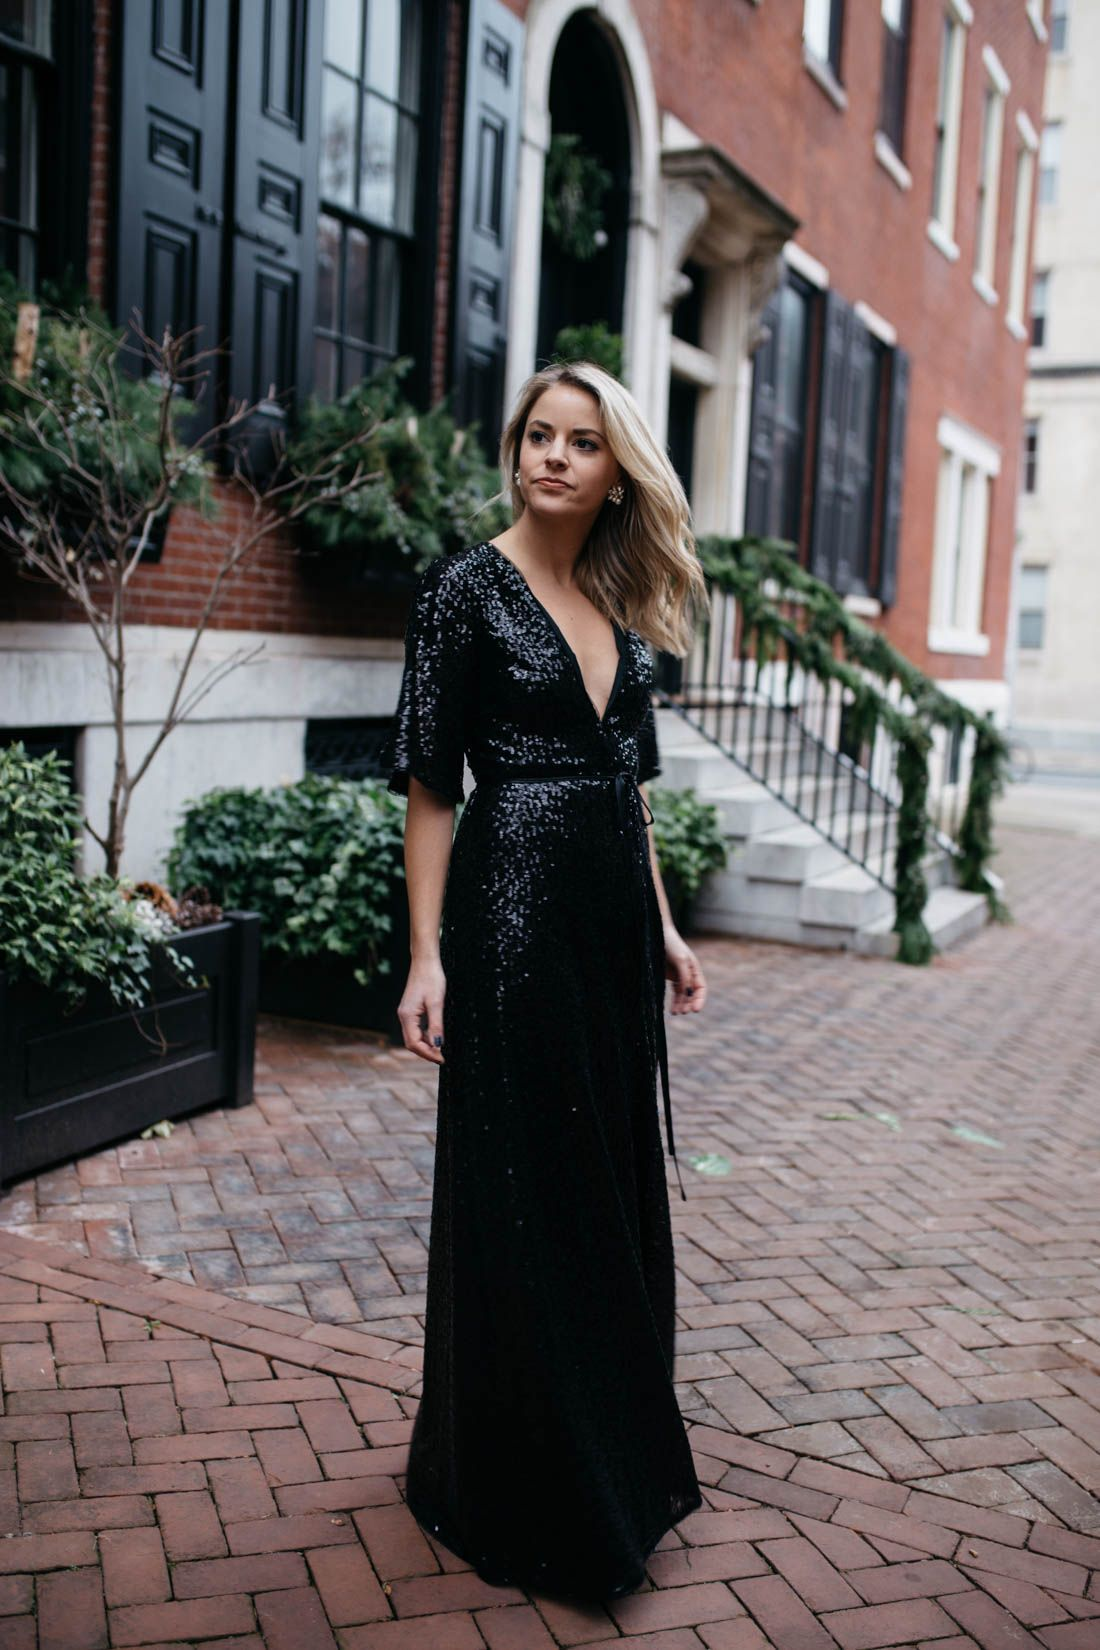 Black Sequin Dress Styled Snapshots Wedding Attire Guest Black Tie Wedding Guest Dress Wedding Guest Outfit Winter [ 1650 x 1100 Pixel ]